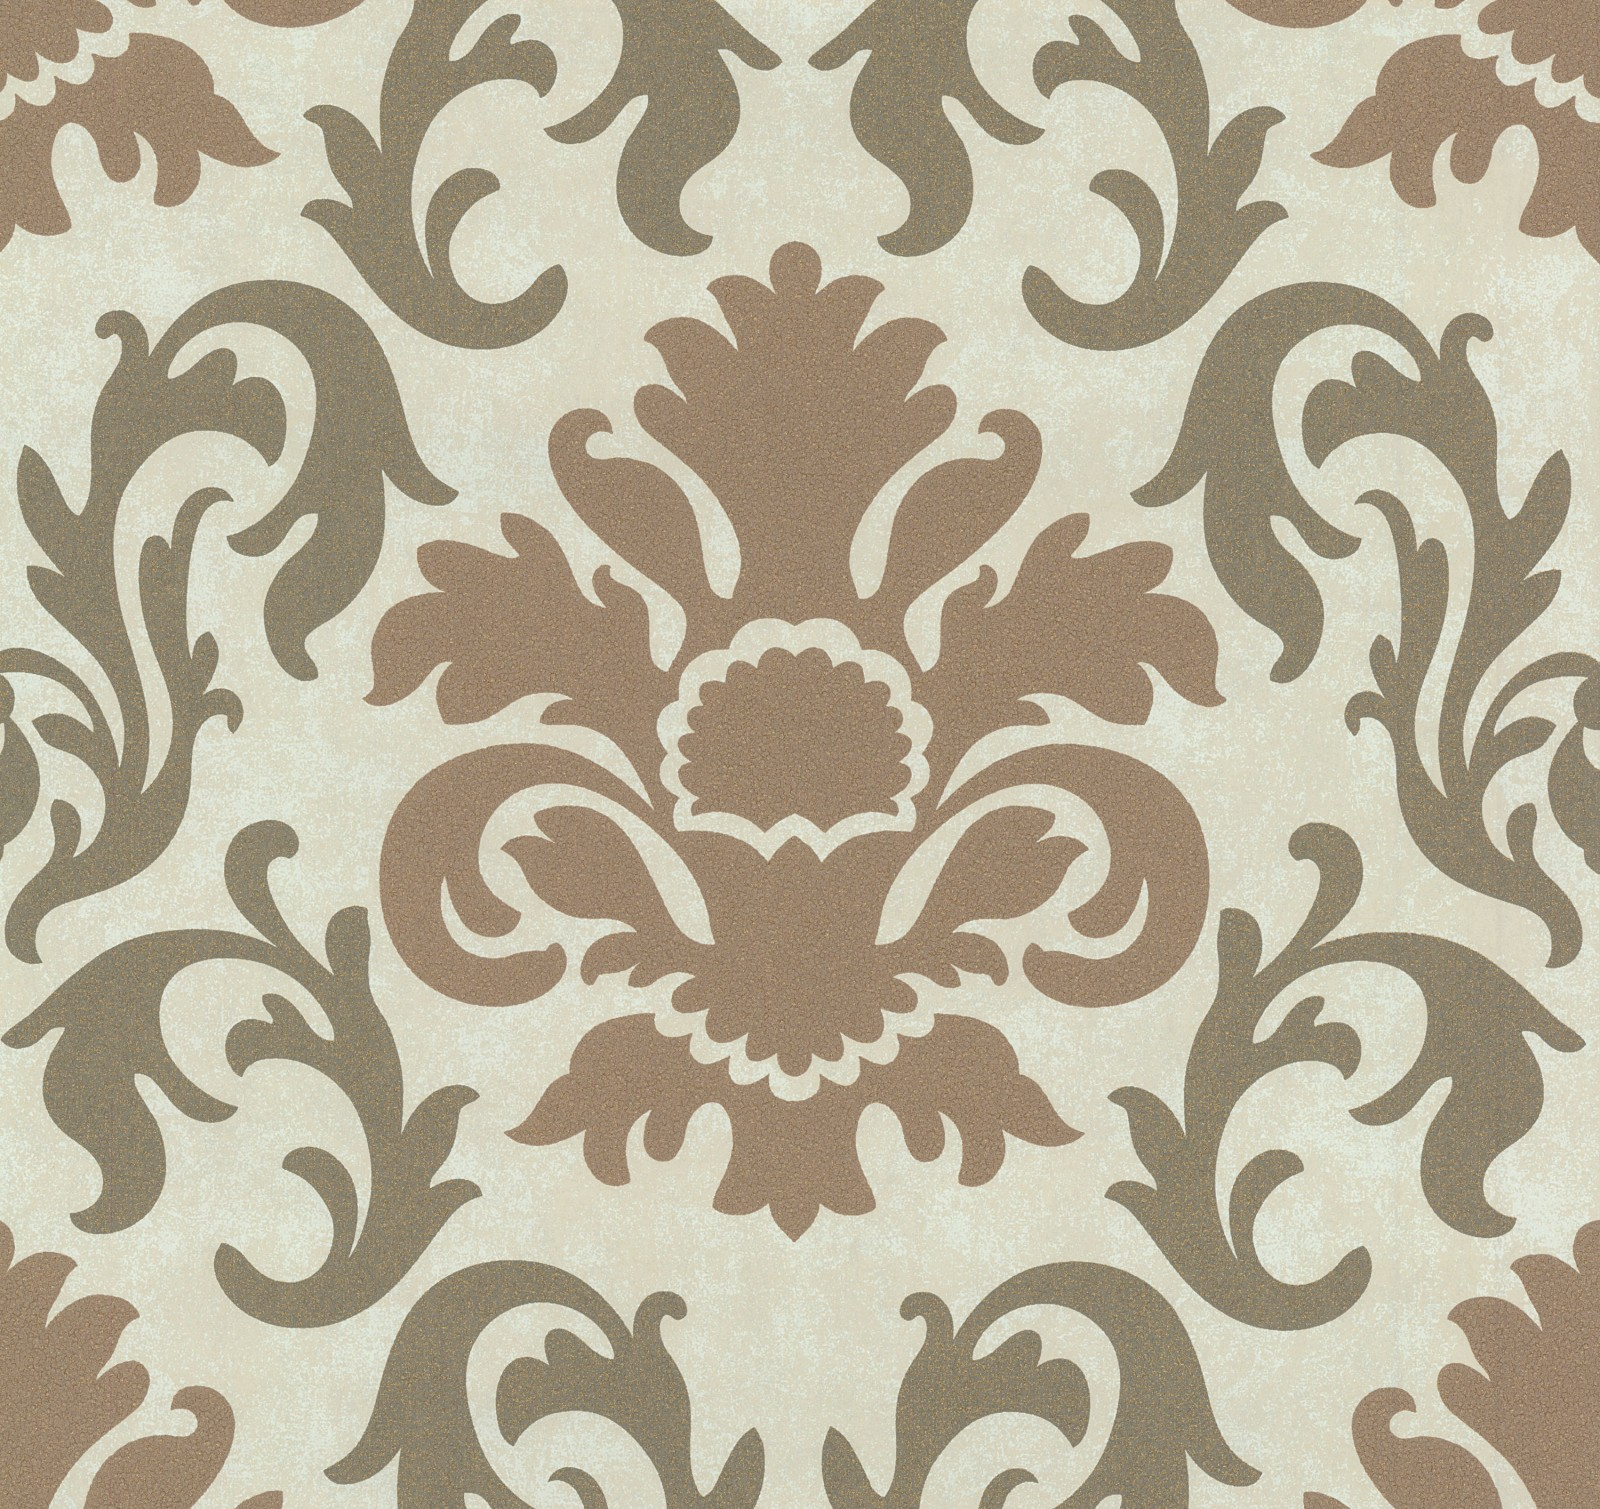 Wallpaper baroque beige brown Carat PS 13343-50